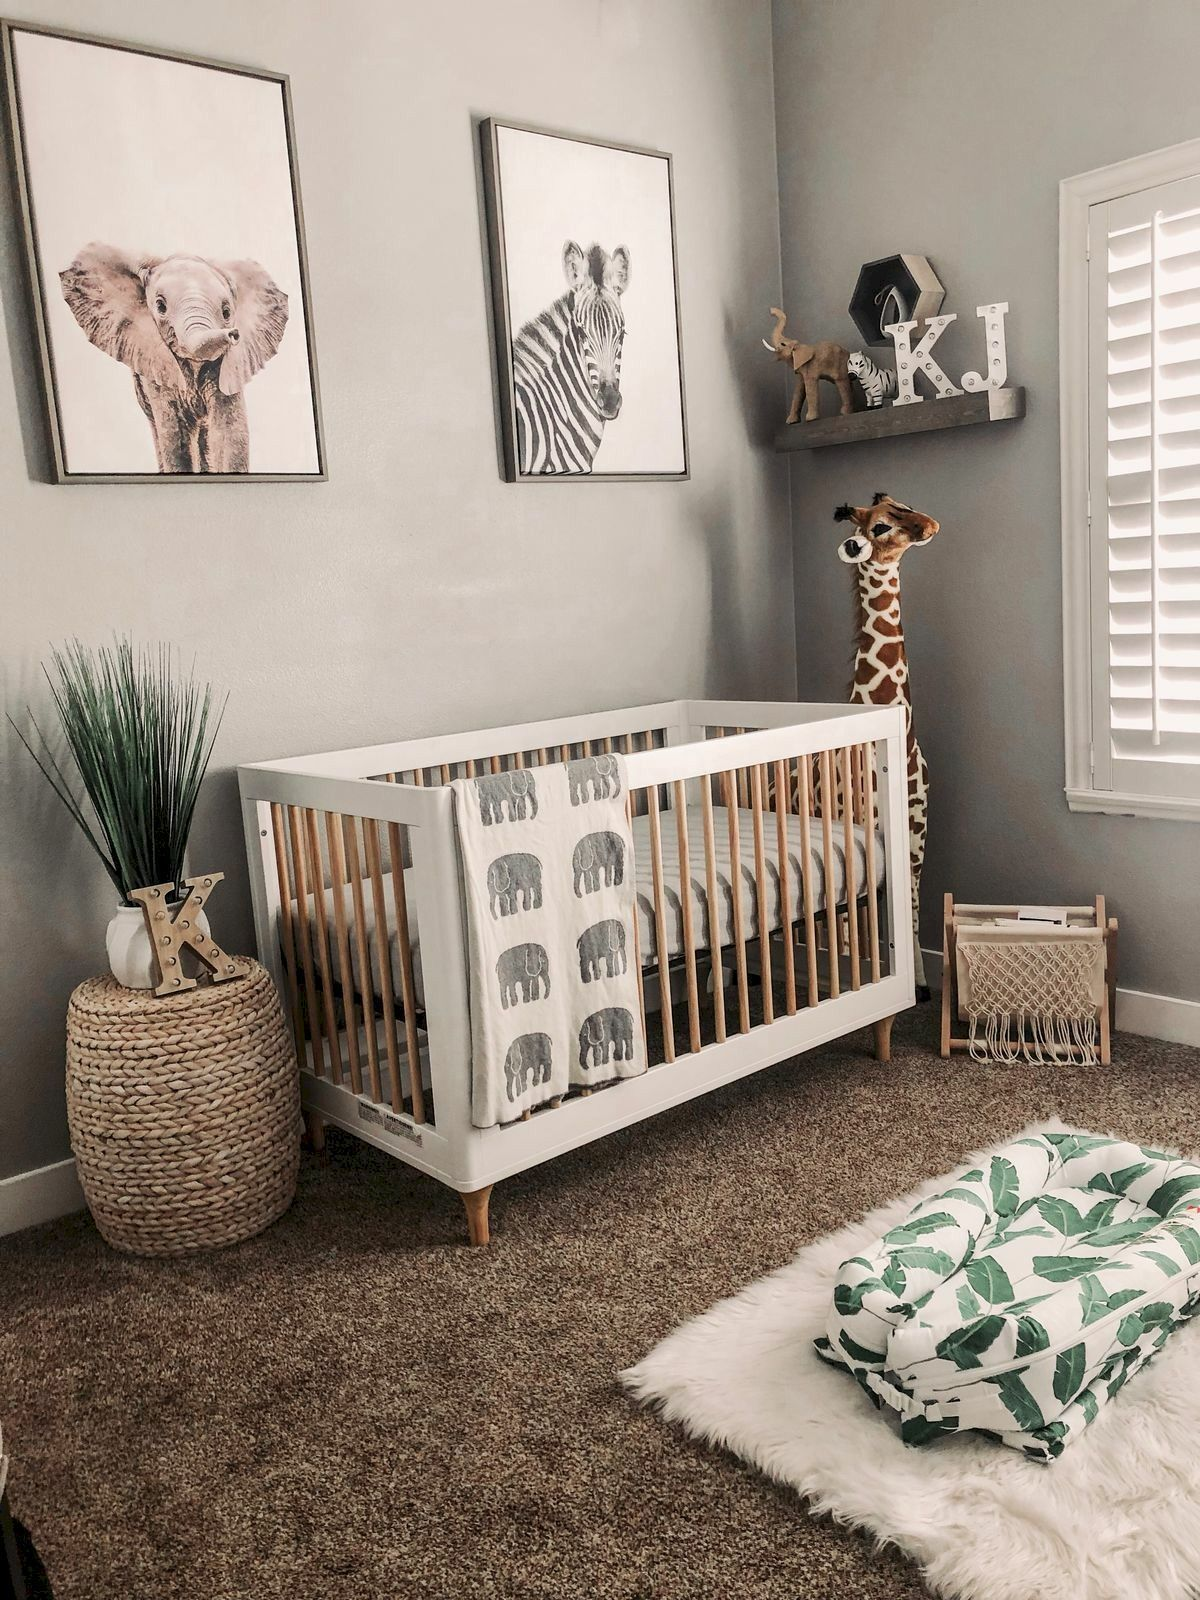 50 Cute Nursery Ideas For Baby Boy Babyboyblankets Your Baby Boy